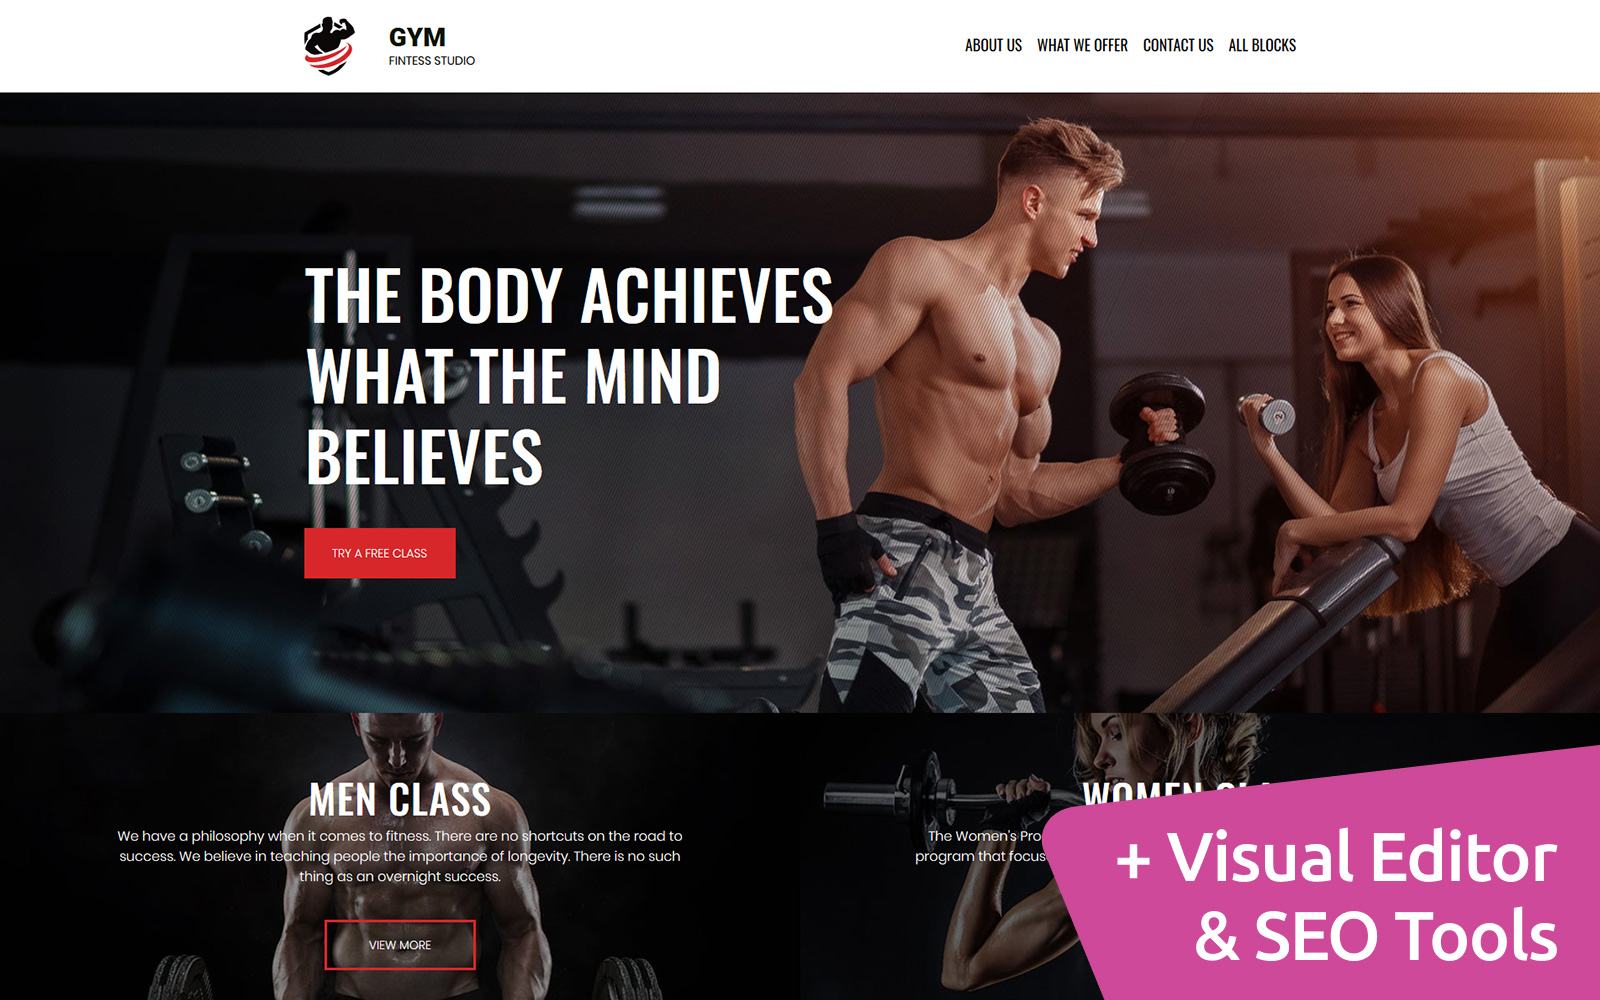 Gym - Fitness Studio Landing Page Template